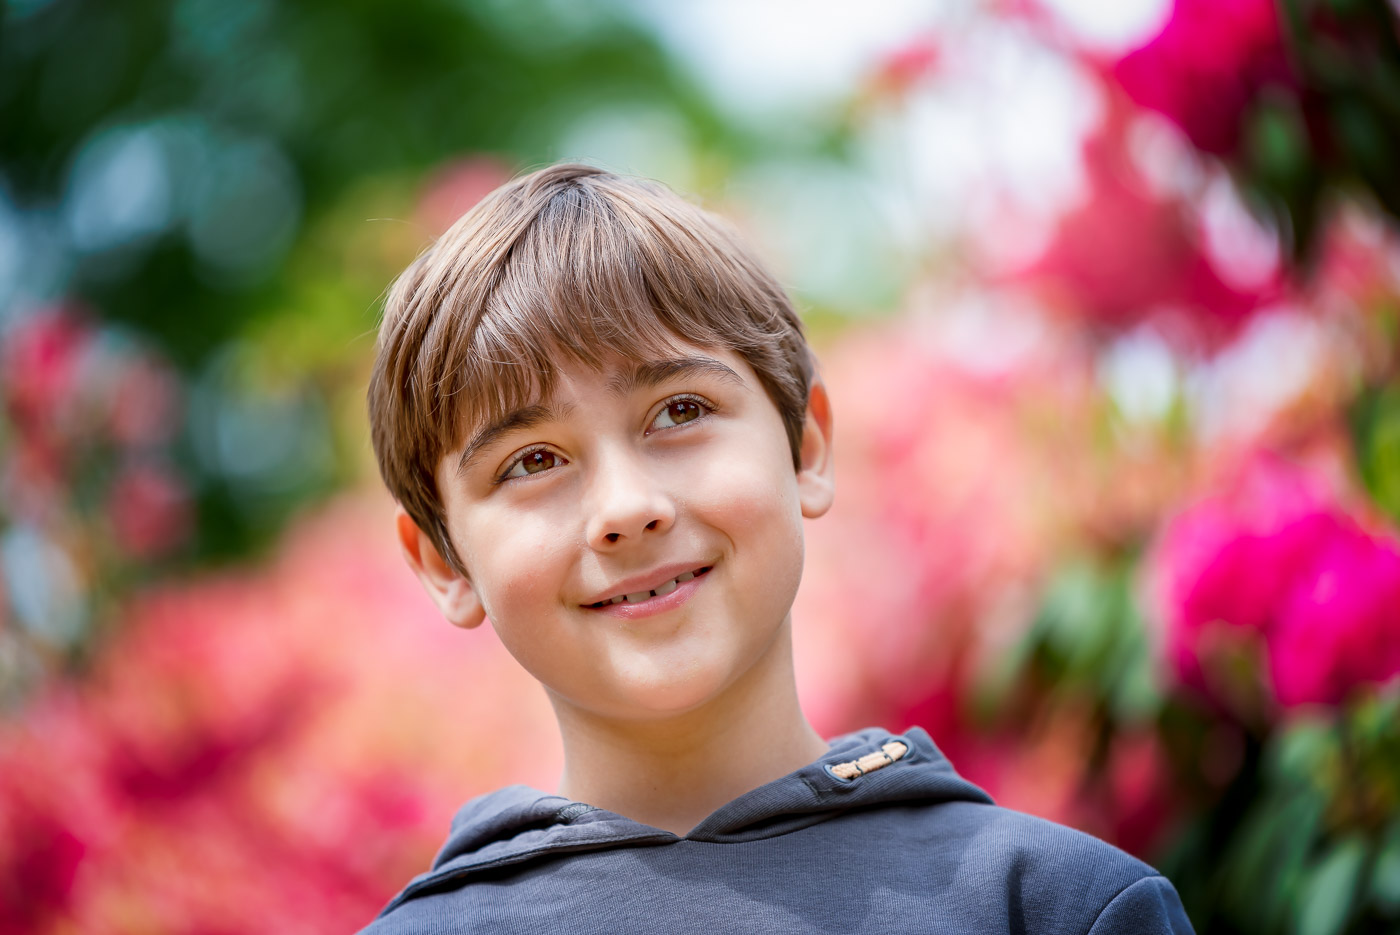 Close up portrait of a smiling tweenager boy in rhododendrons garden